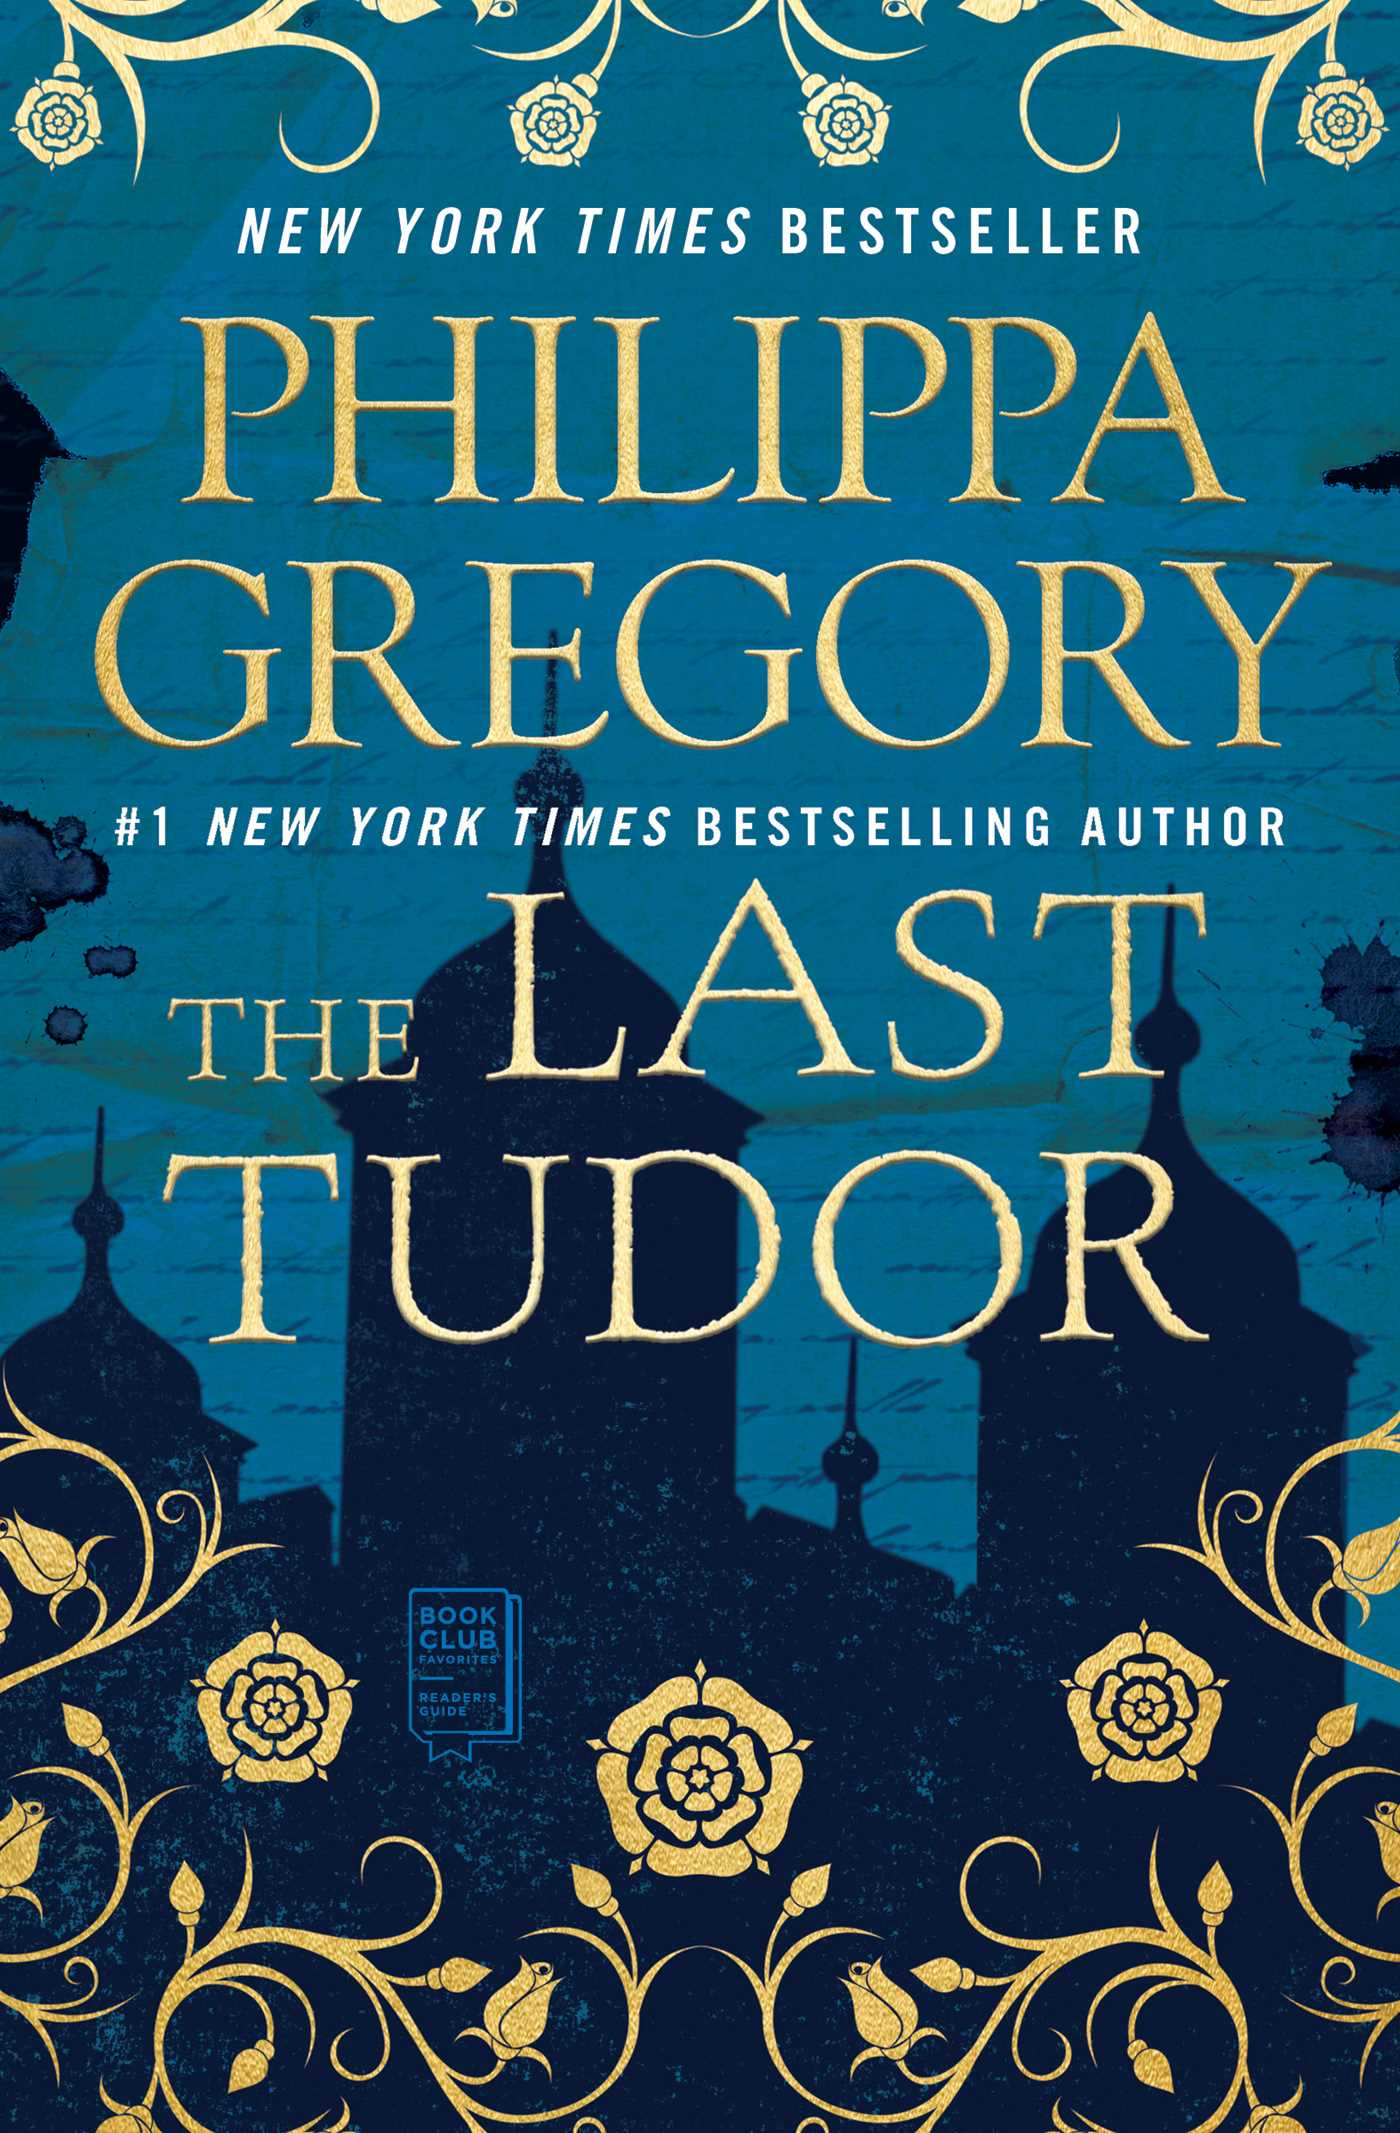 The last tudor 9781476758770 hr